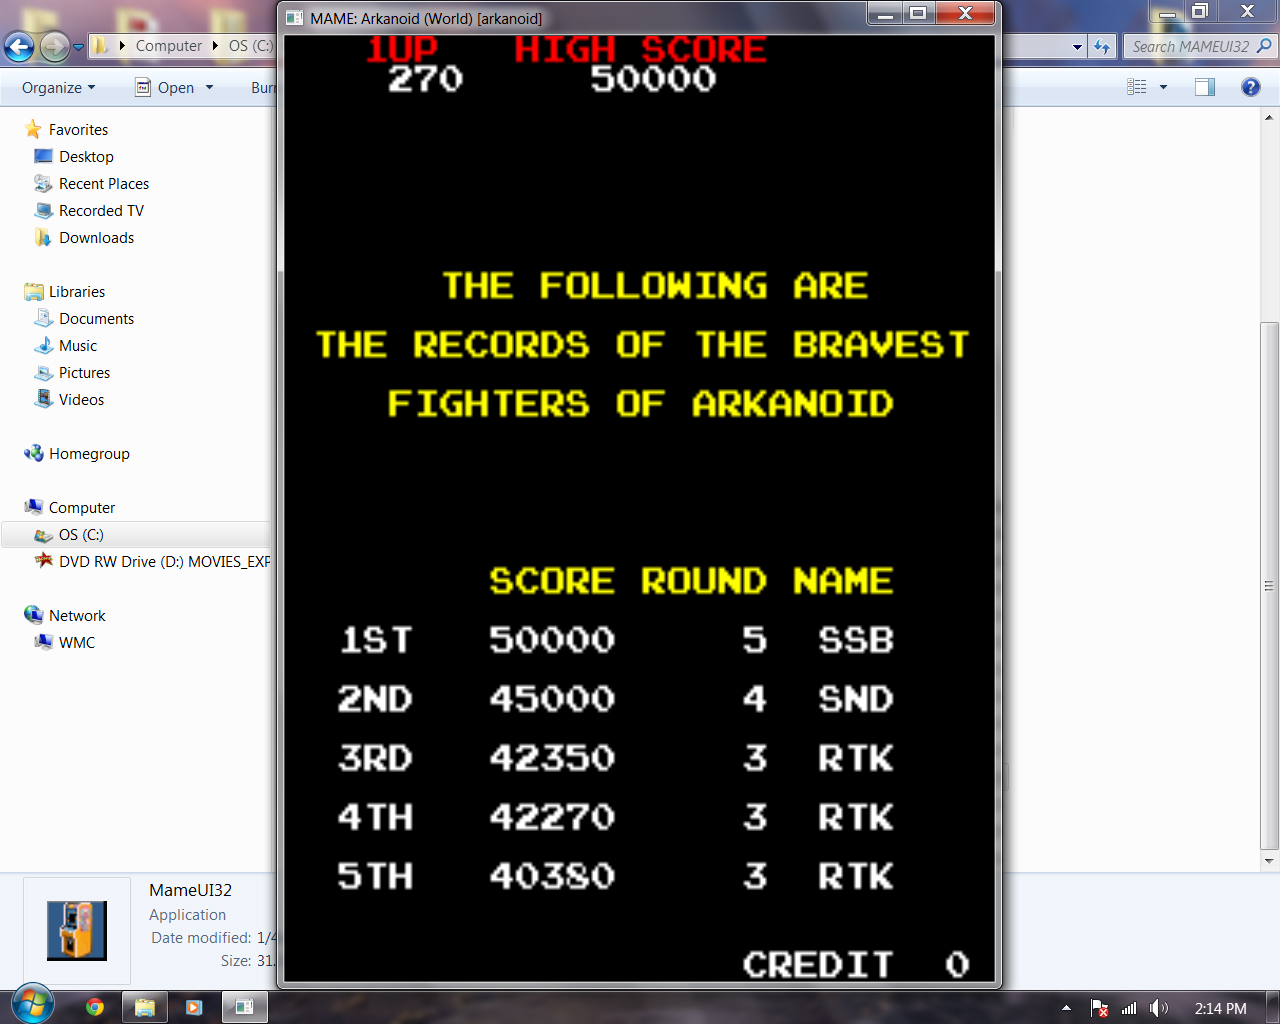 rtkiii: Arkanoid (Arcade Emulated / M.A.M.E.) 42,350 points on 2014-06-24 14:53:30